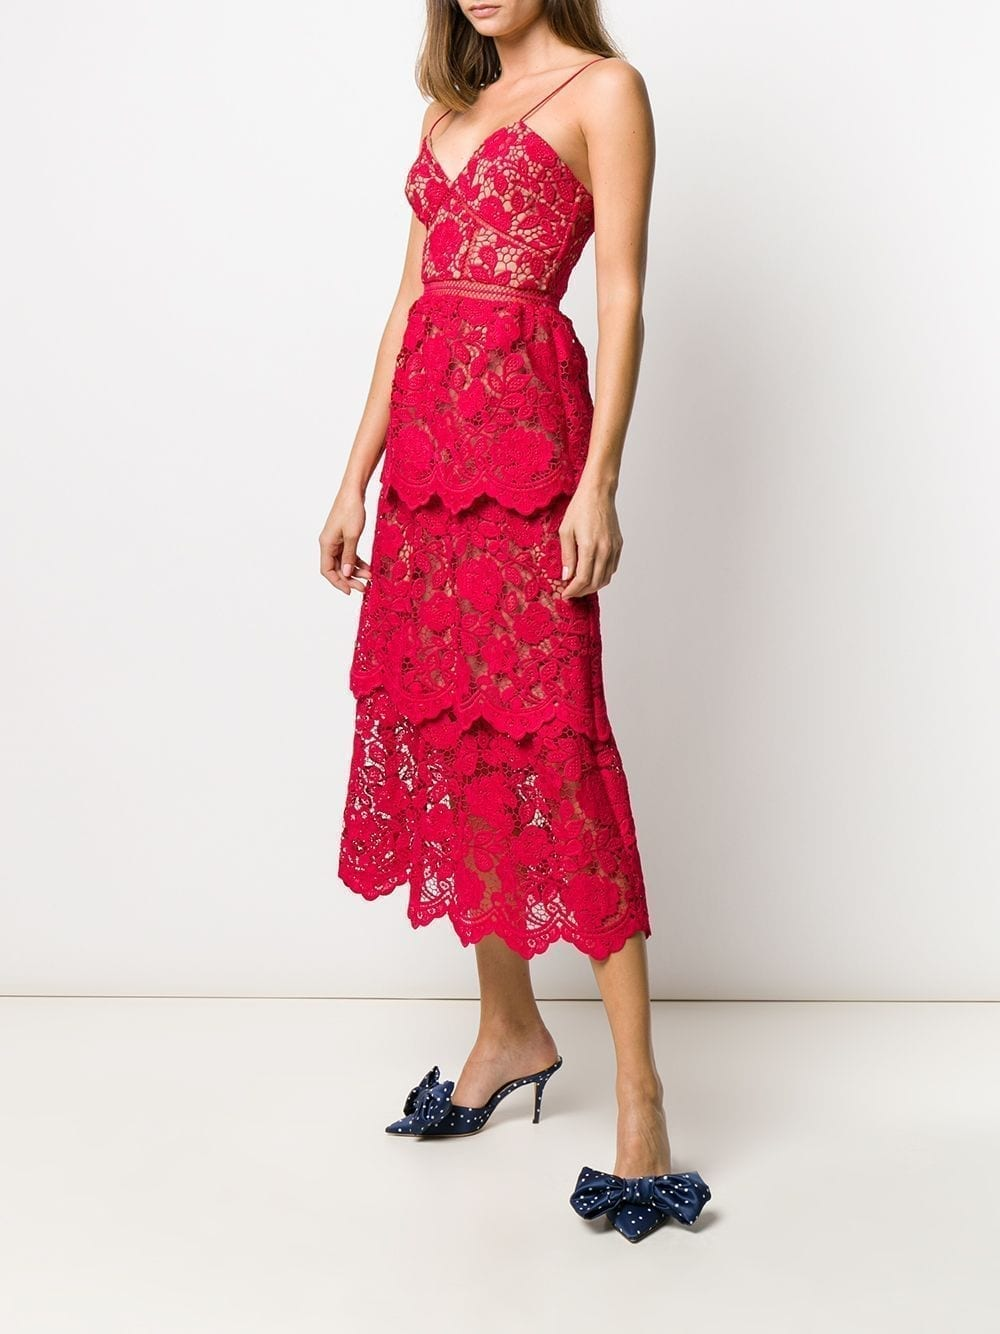 SELF-PORTRAIT Lace Midi Dress